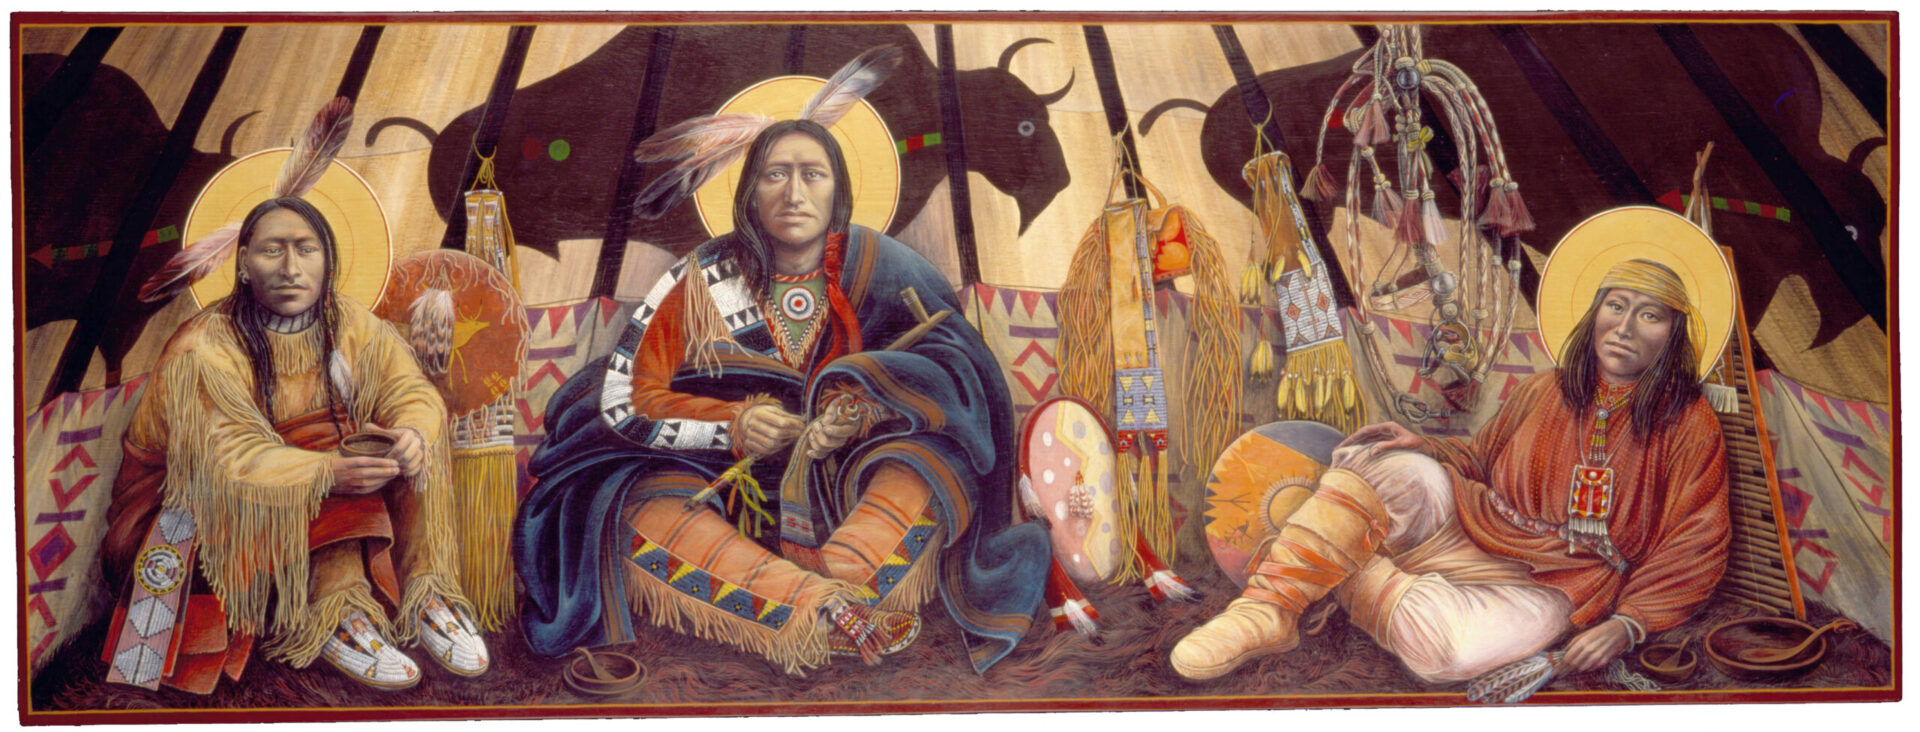 The Tent at Mamre Native American Art by Fr. John Giuliani